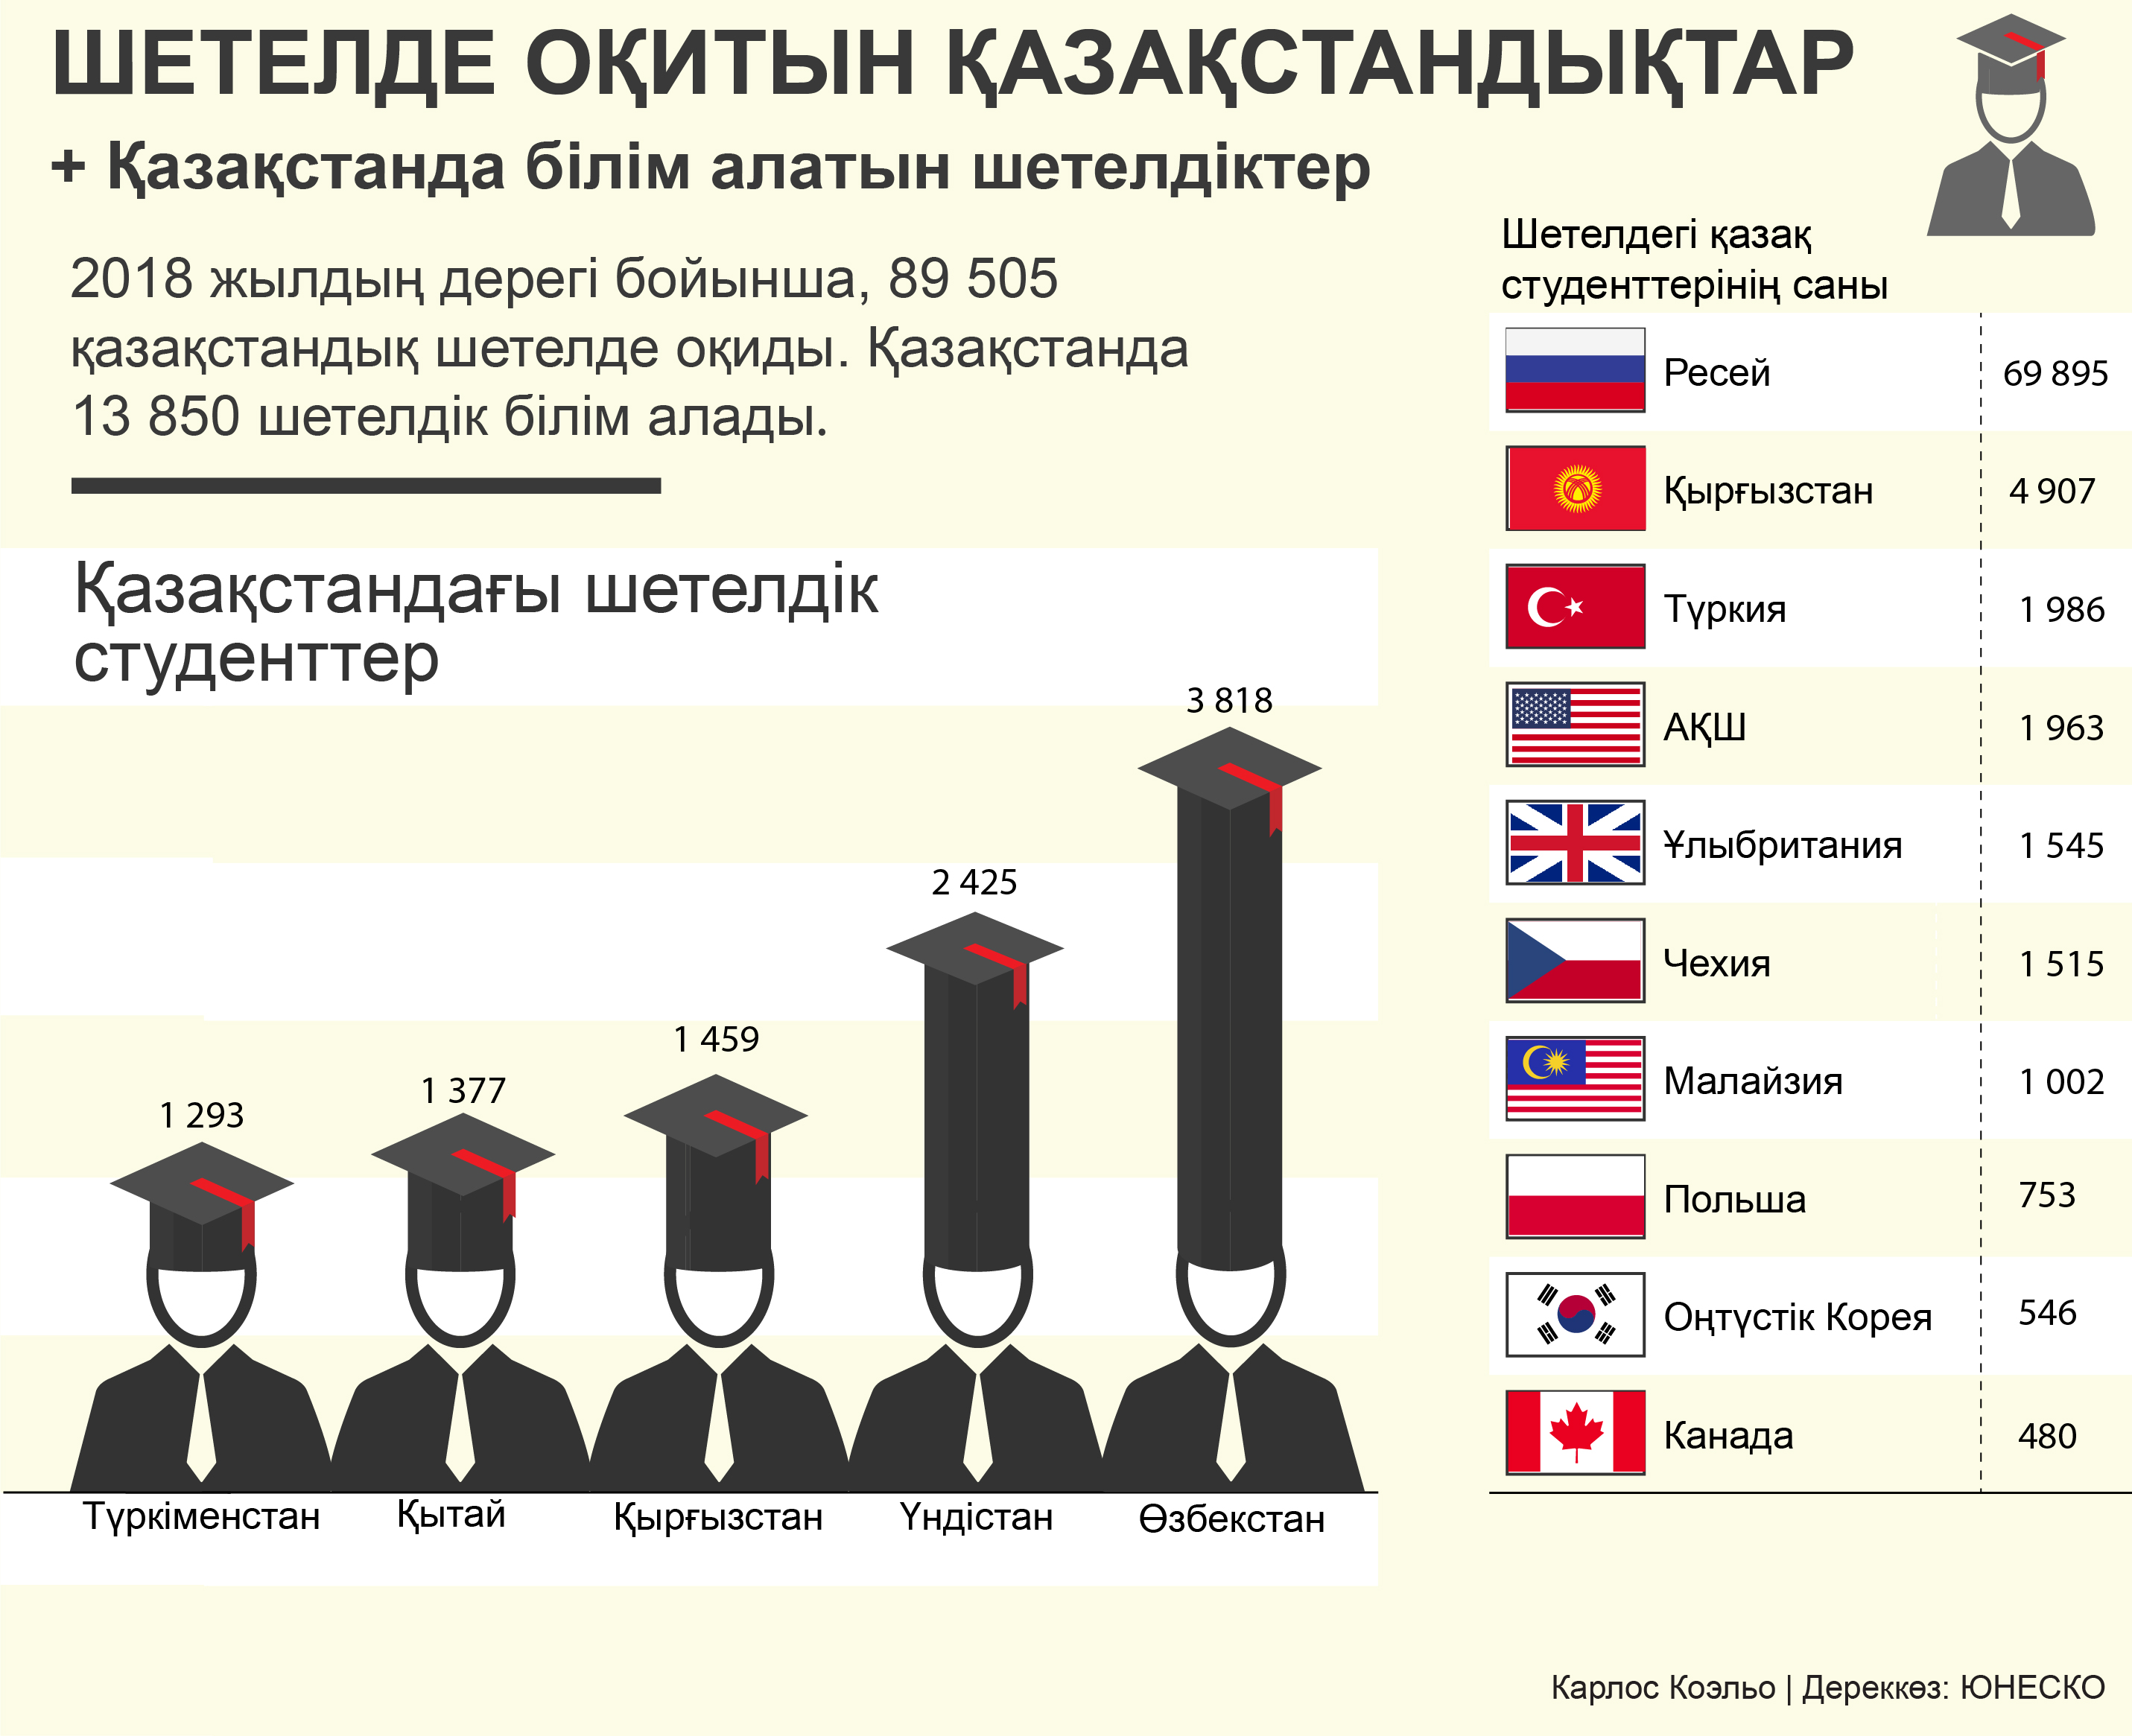 infographic about students